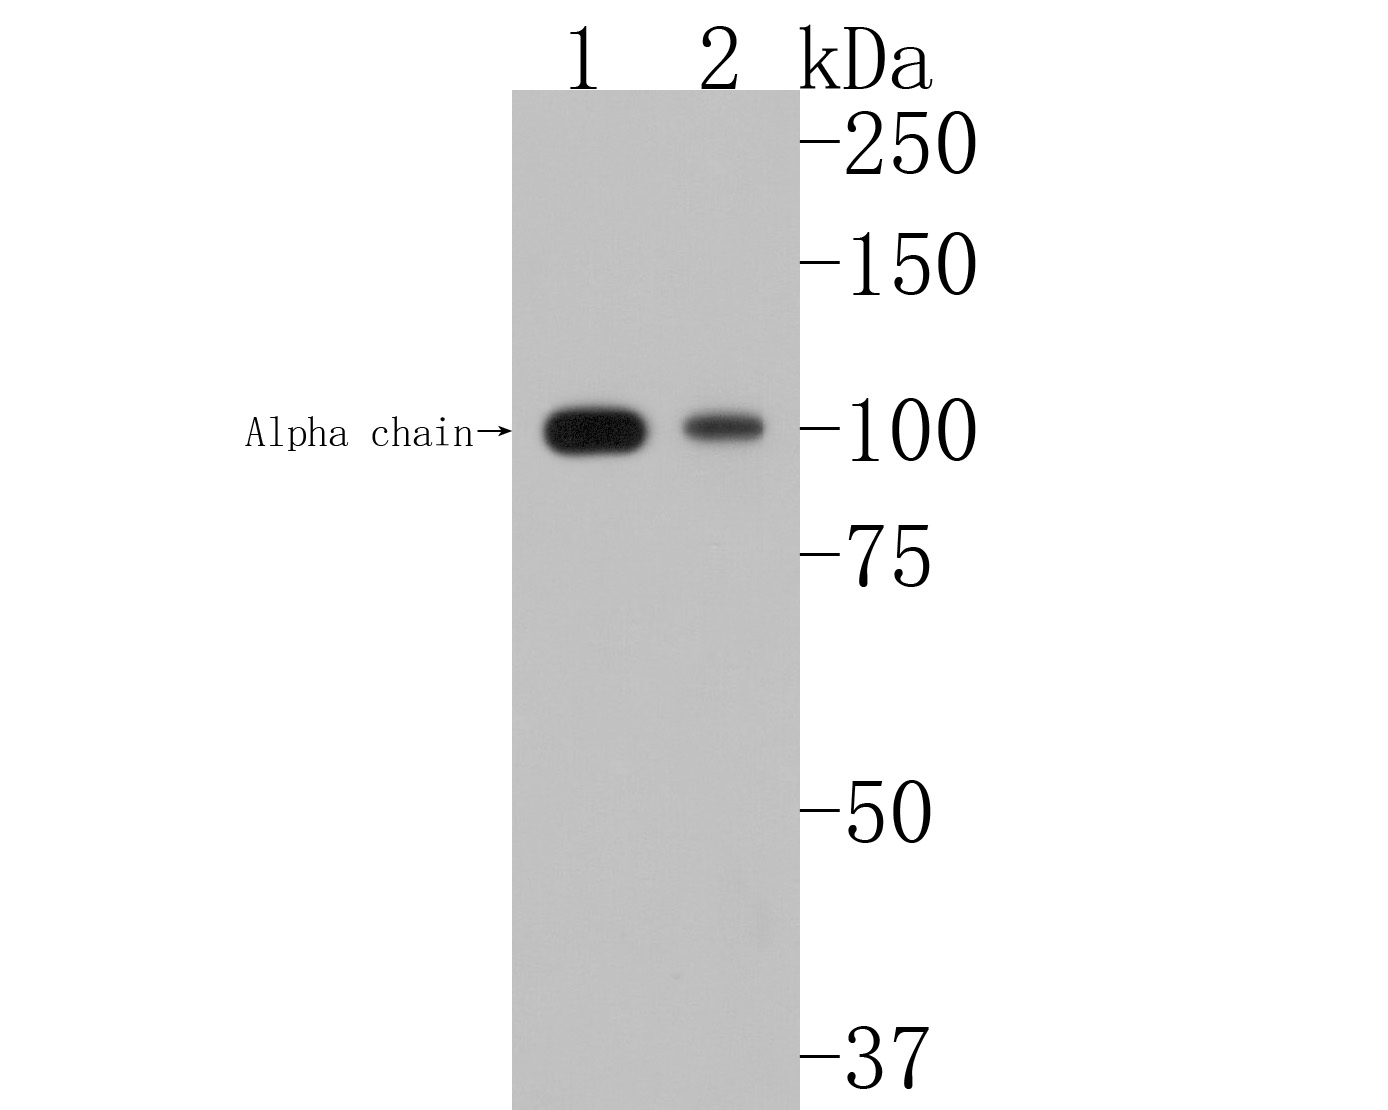 Western blot analysis of C3 on different lysates. Proteins were transferred to a PVDF membrane and blocked with 5% BSA in PBS for 1 hour at room temperature. The primary antibody (ET1702-99, 1/500) was used in 5% BSA at room temperature for 2 hours. Goat Anti-Rabbit IgG - HRP Secondary Antibody (HA1001) at 1:5,000 dilution was used for 1 hour at room temperature.<br /> Positive control: <br /> Lane 1: HepG2 cell lysate<br /> Lane 2: Hela cell lysate